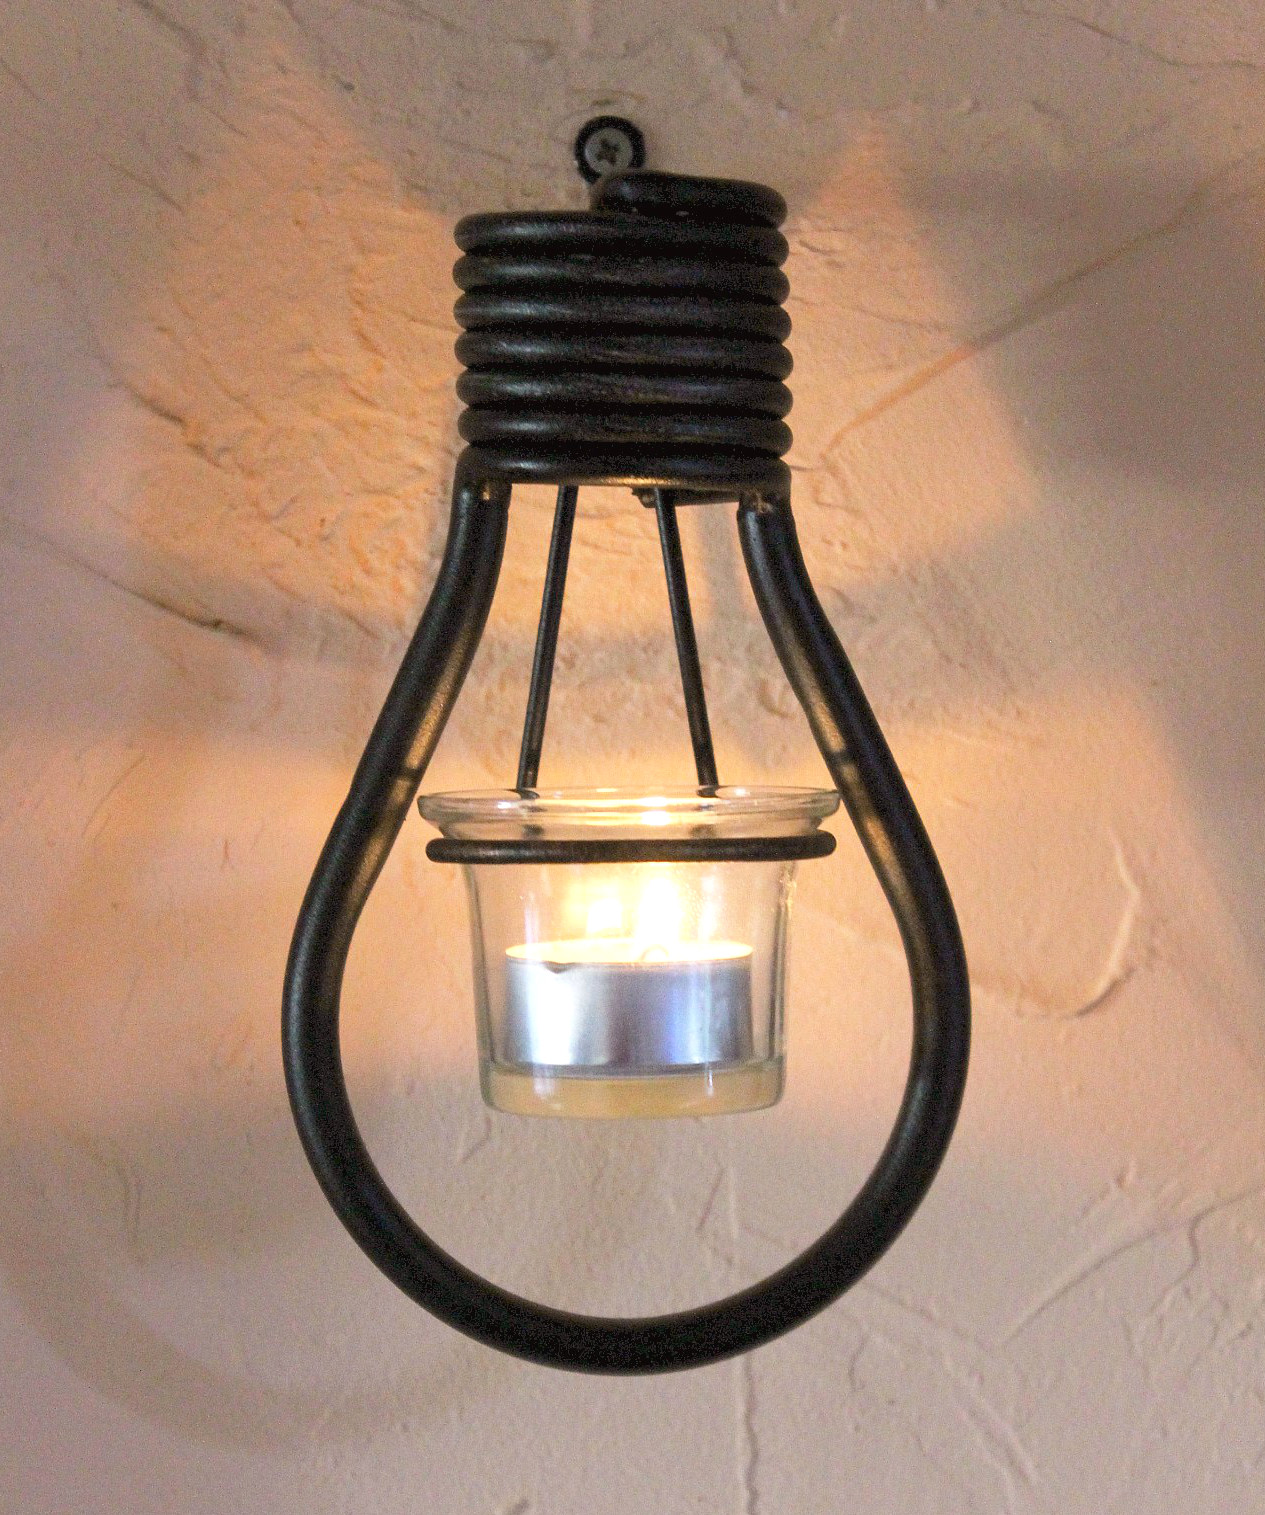 Wall mounted tea light holder Bulbs 19 cm Tealight holder From Metal Wall light eBay